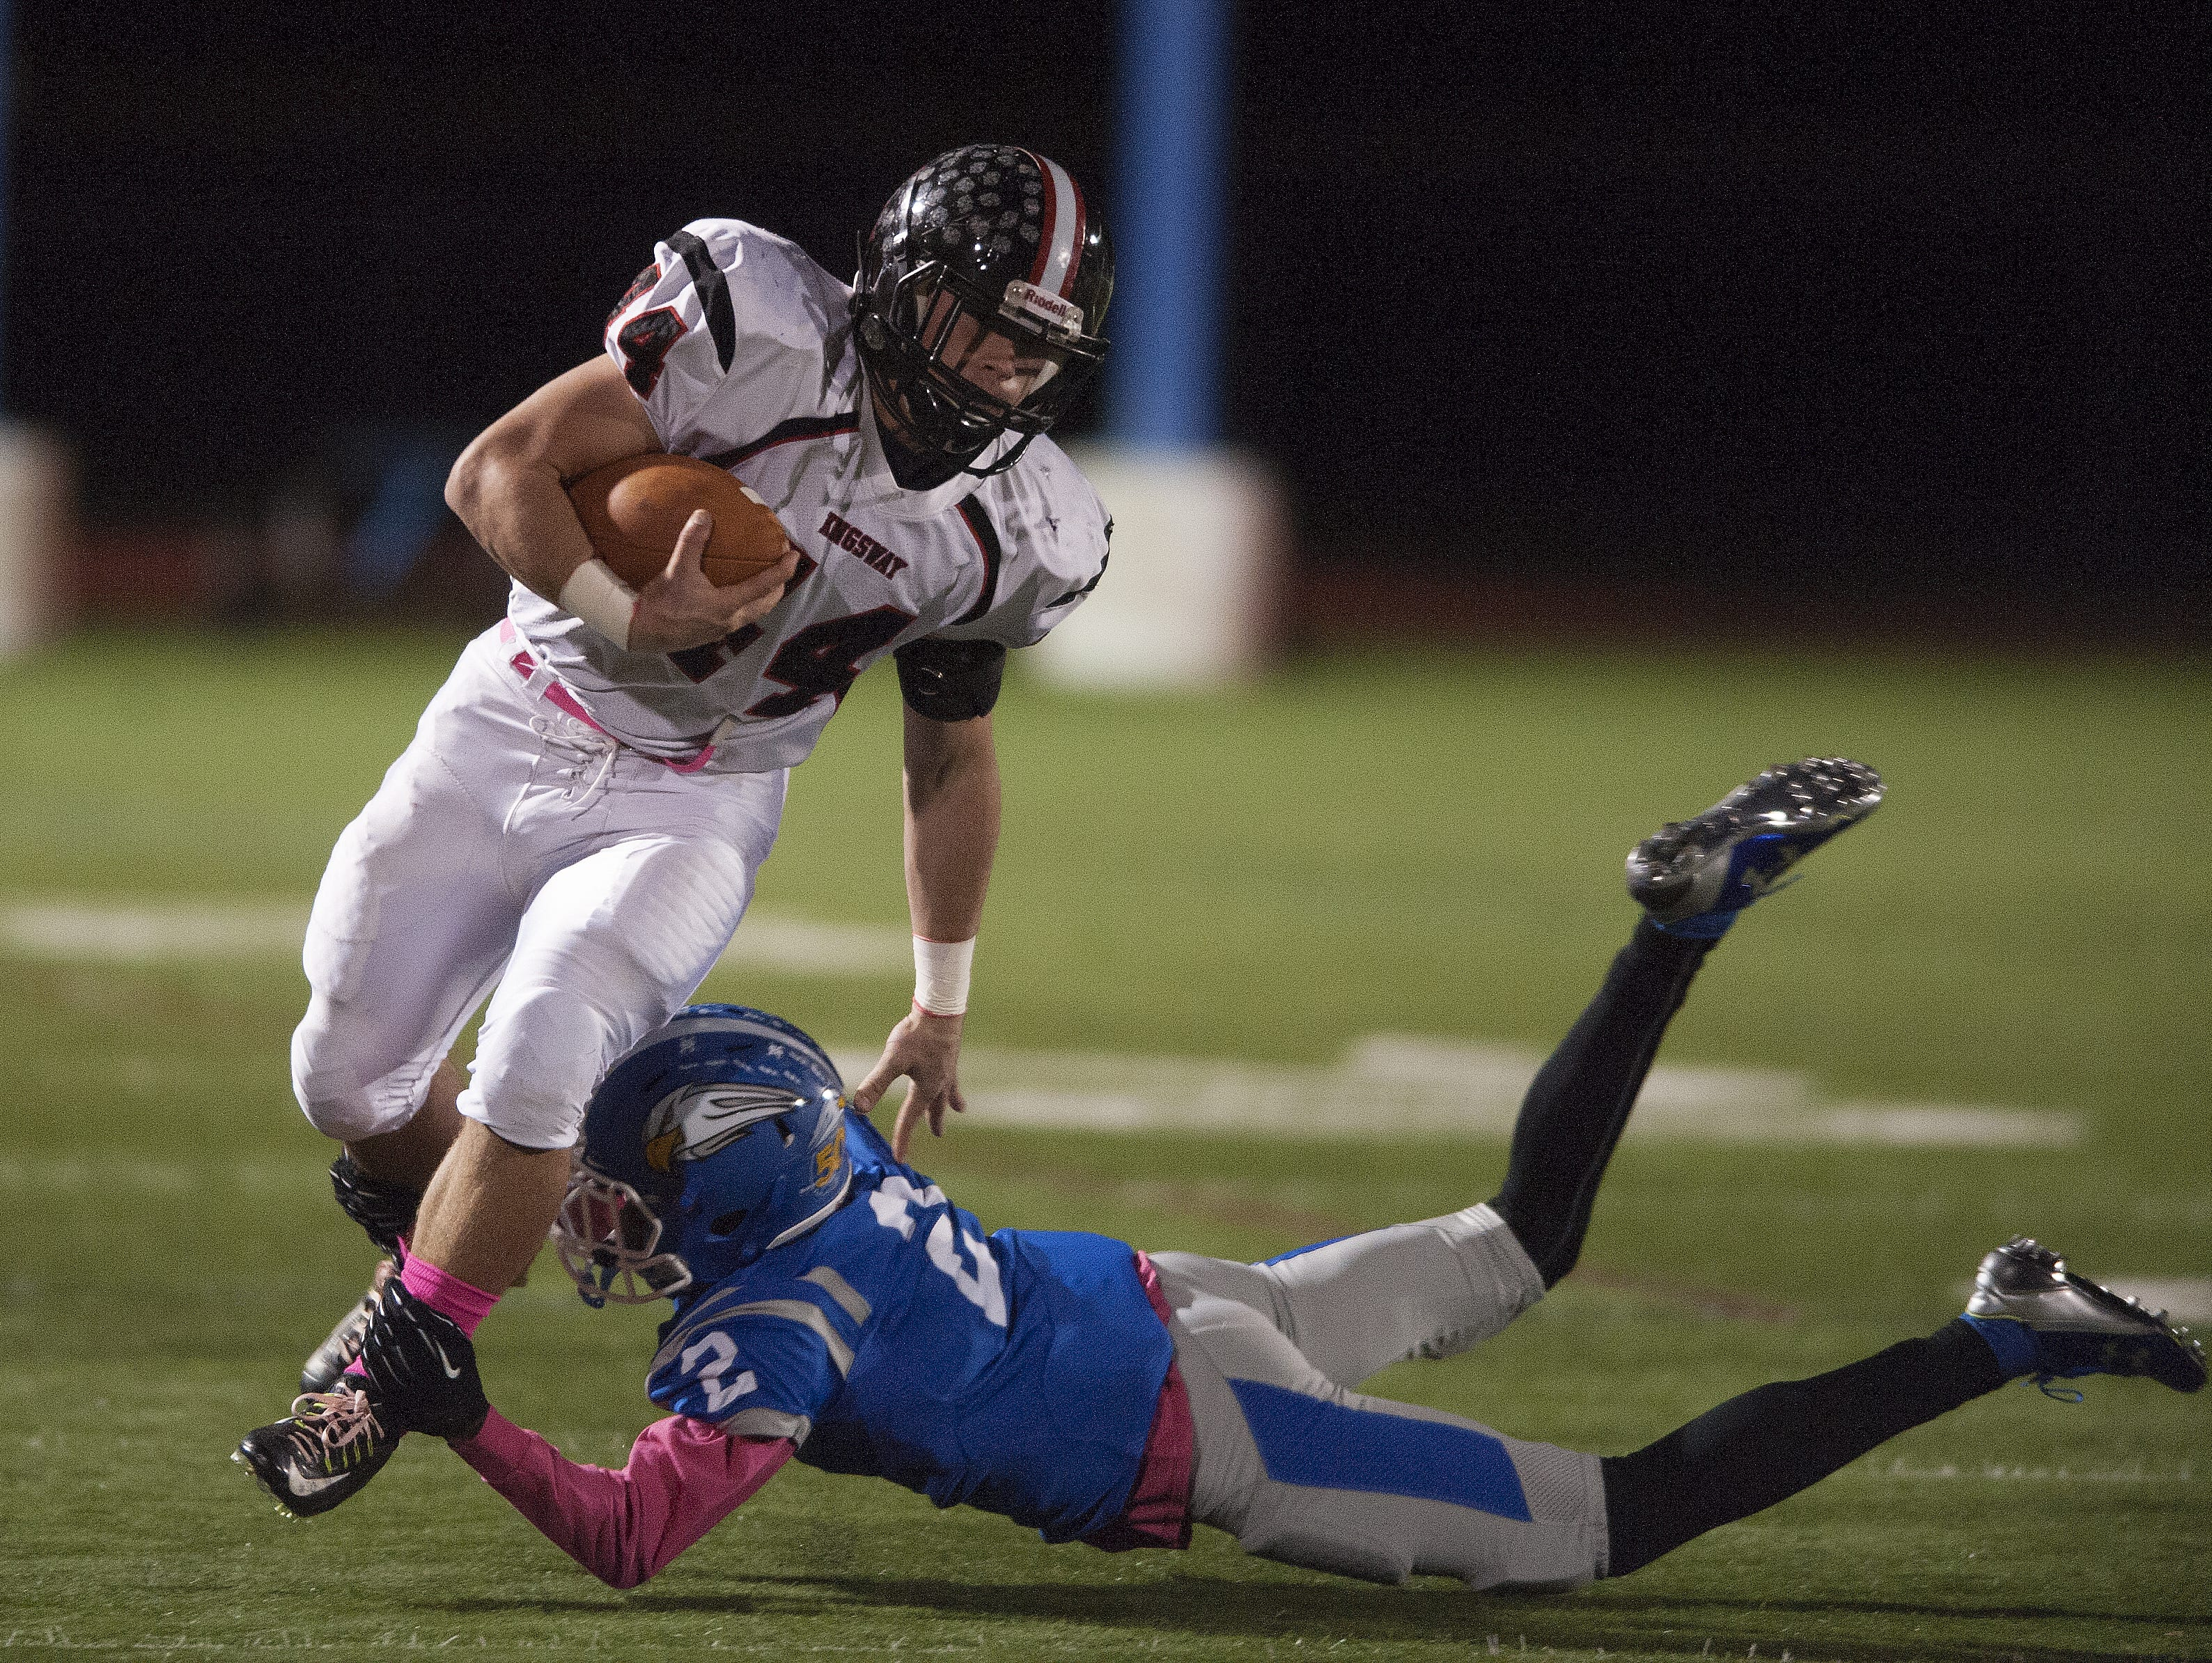 Kingsway's Jay Scerbo , left, runs the ball as he tries to break the tackle of Paul VI's Lonnie Moore in Friday's game.